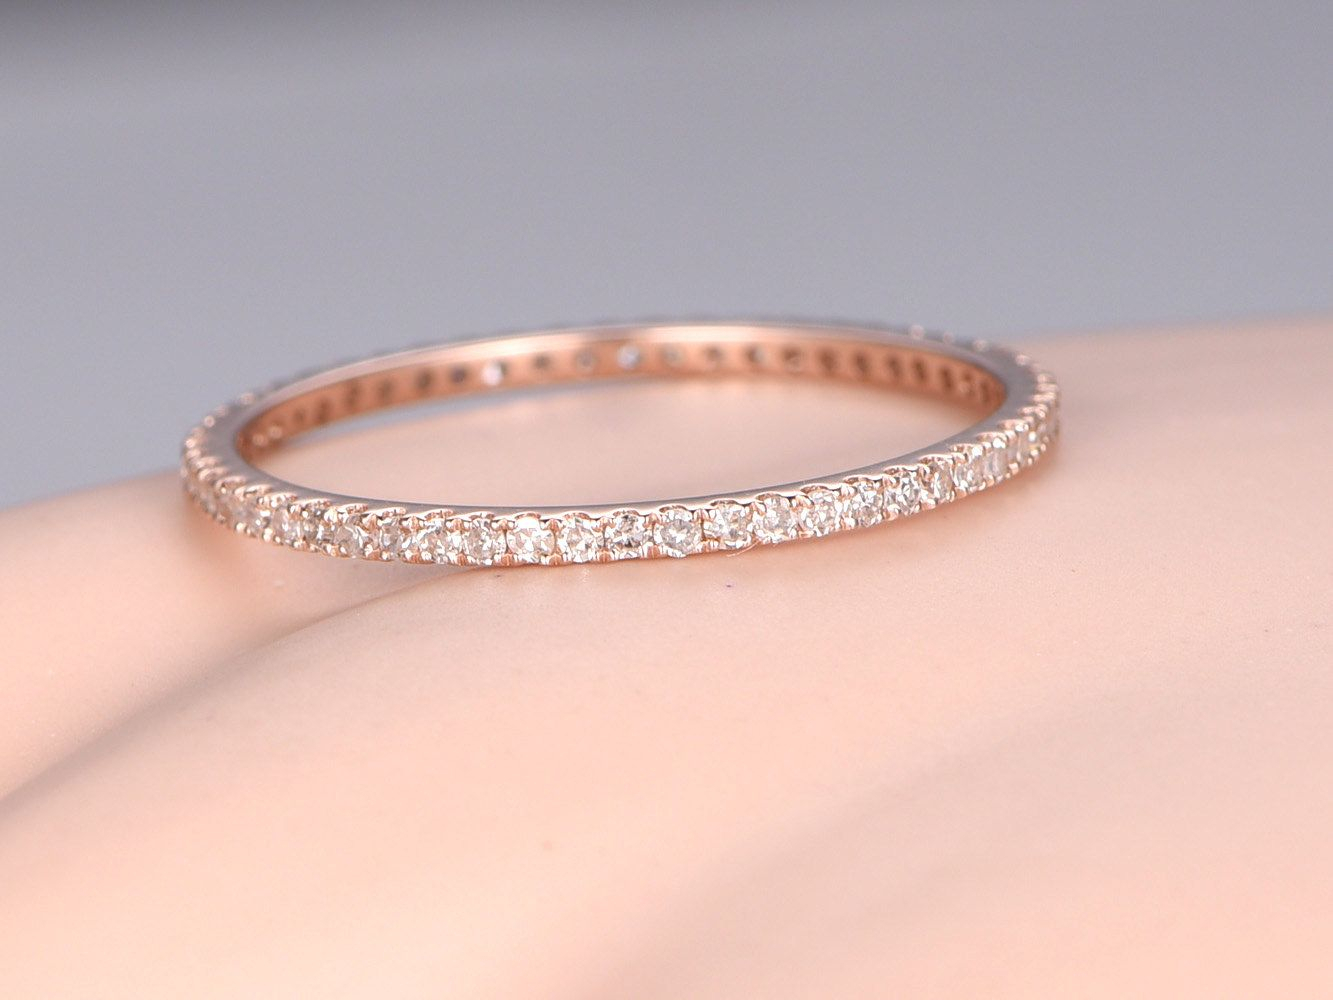 Diamond Wedding Band Petite French Micro Pave Band Solid 14k With Regard To Latest Full Micropavé Diamond Wedding Bands (View 2 of 25)